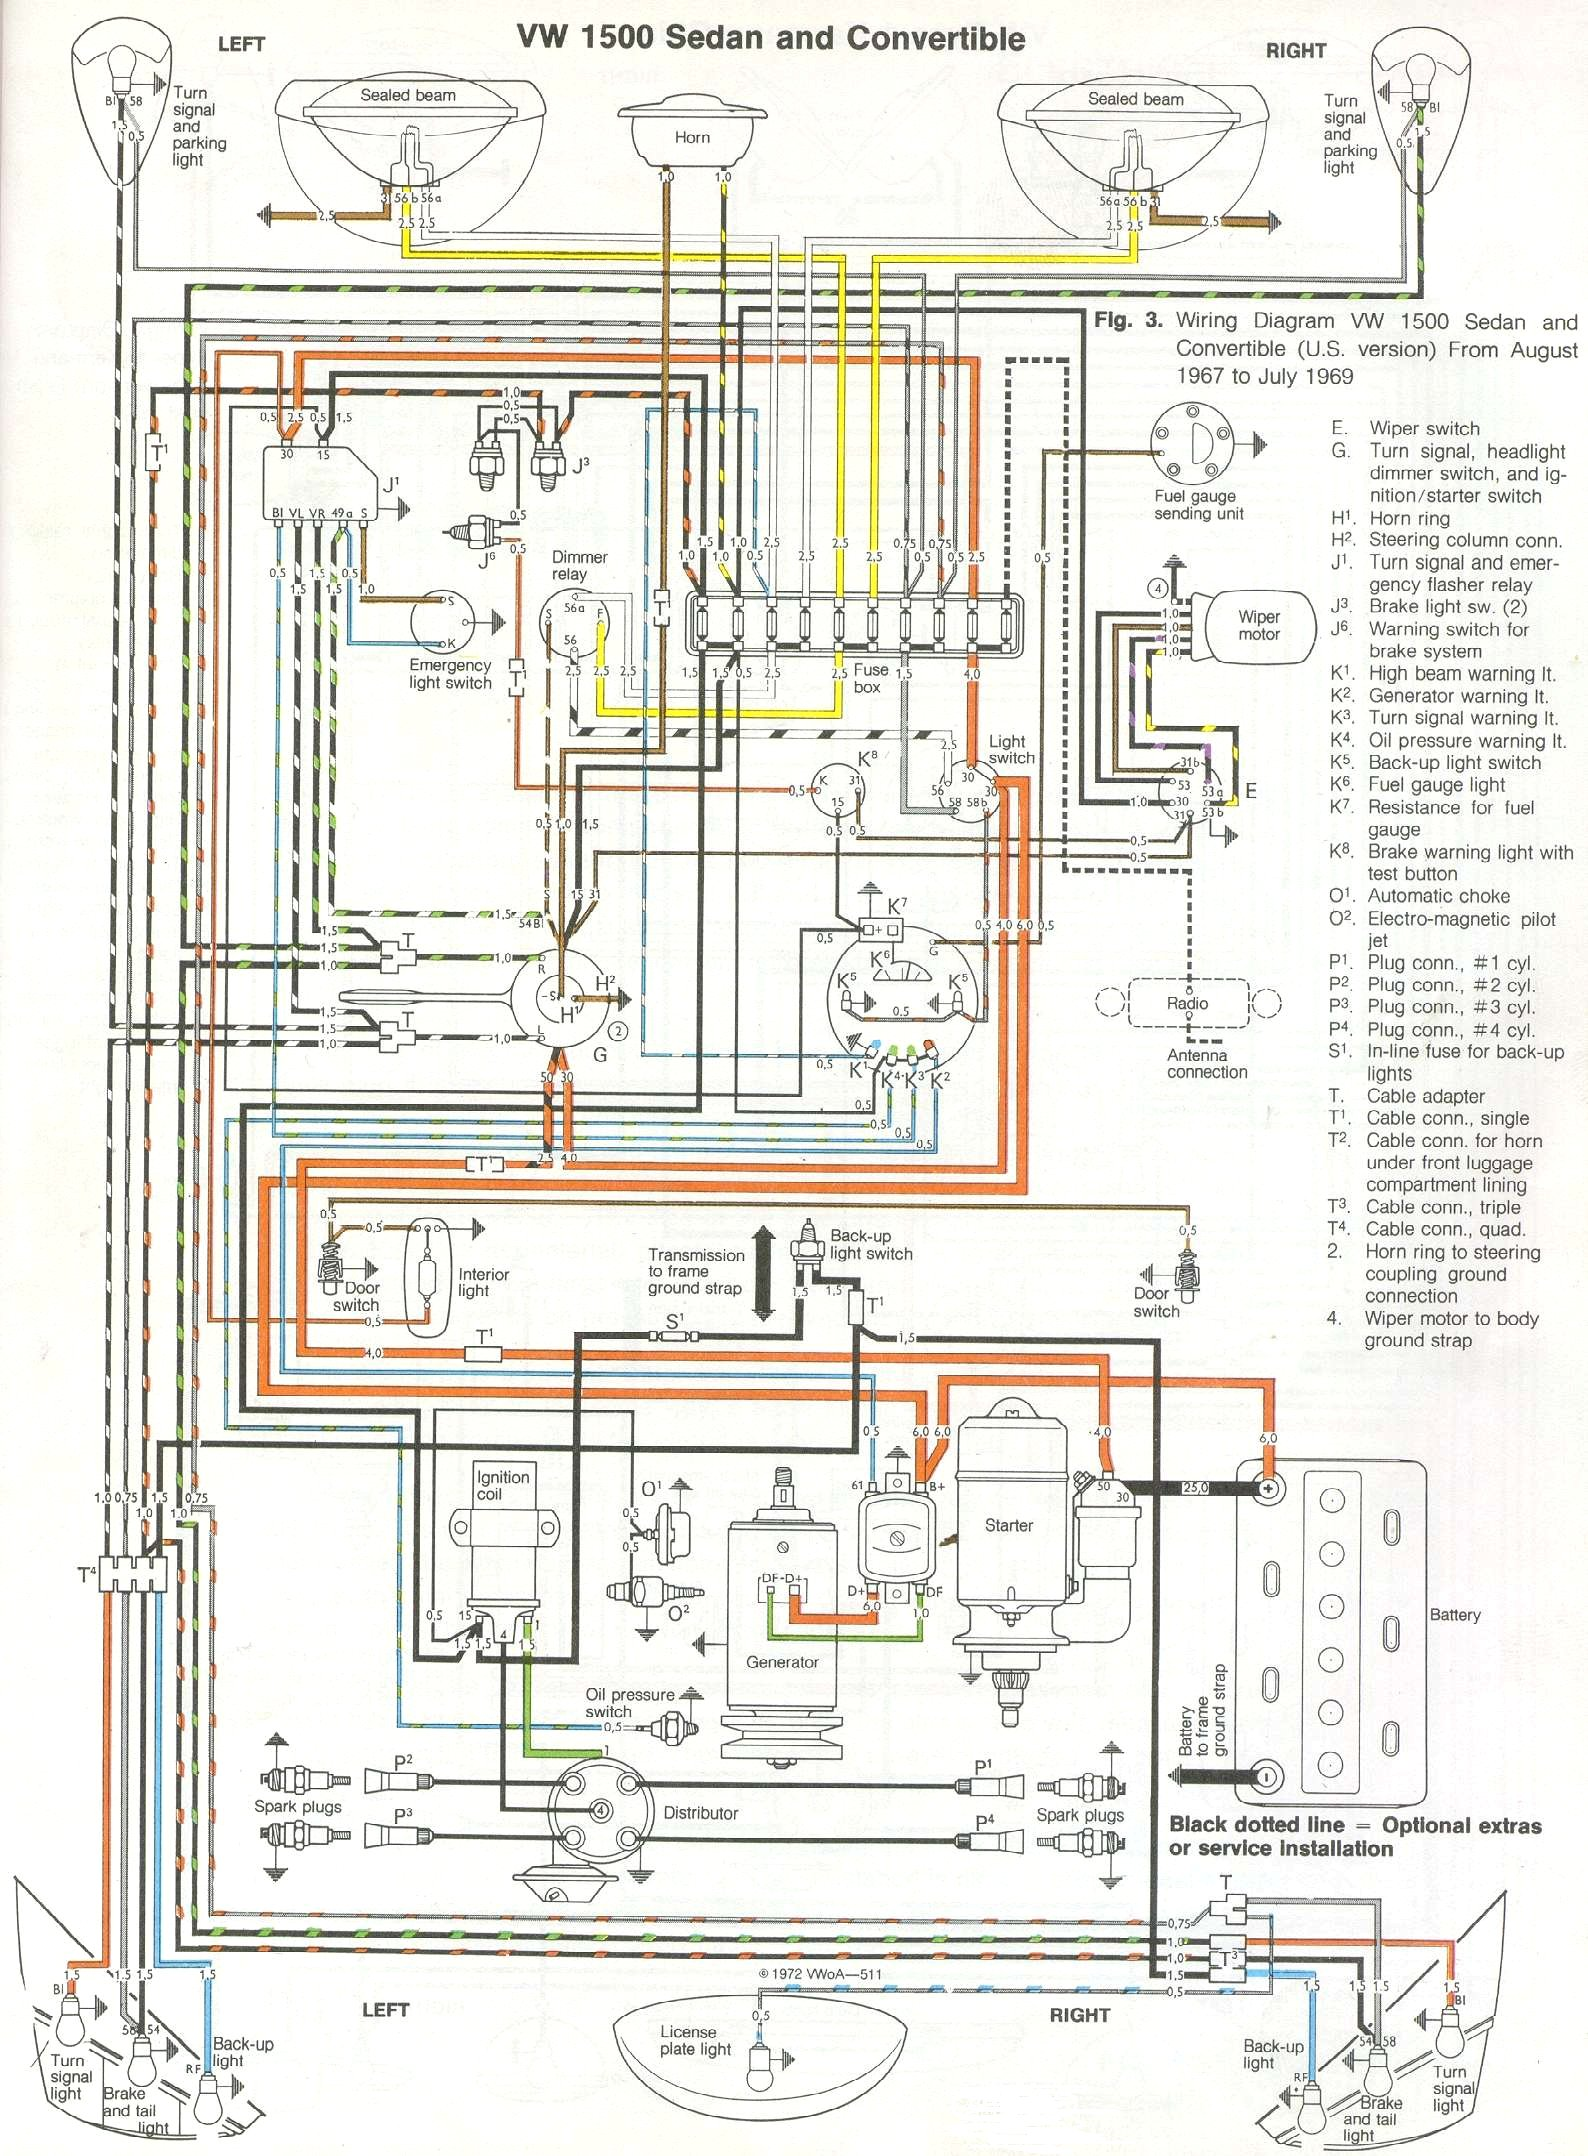 bug_6869 1969 71 beetle wiring diagram thegoldenbug com Electrical Wiring Diagrams at gsmx.co